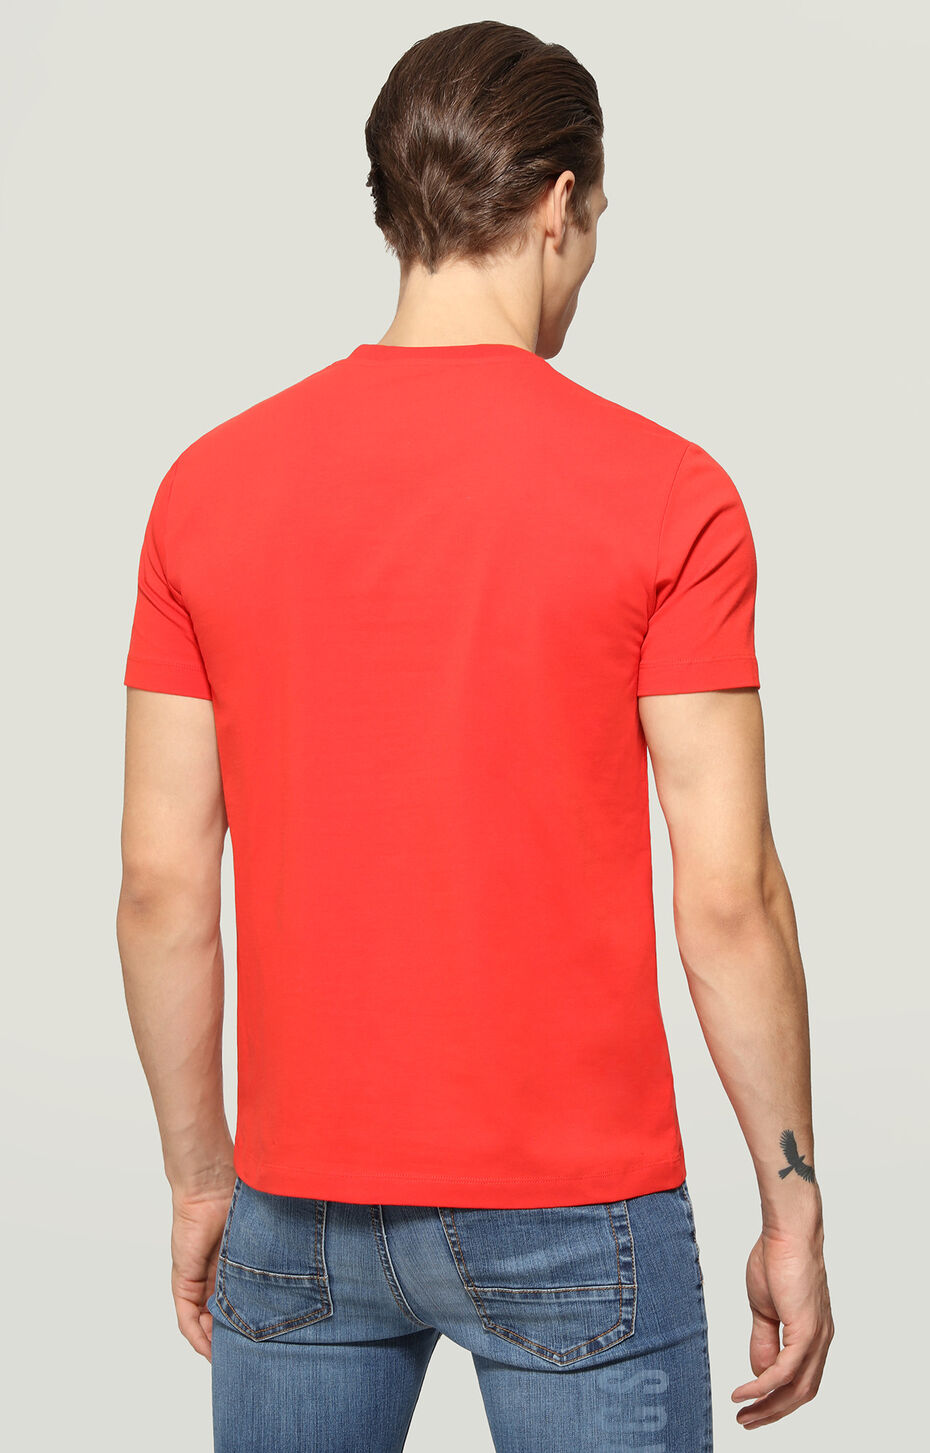 T-SHIRT, Rouge, hi-res-1